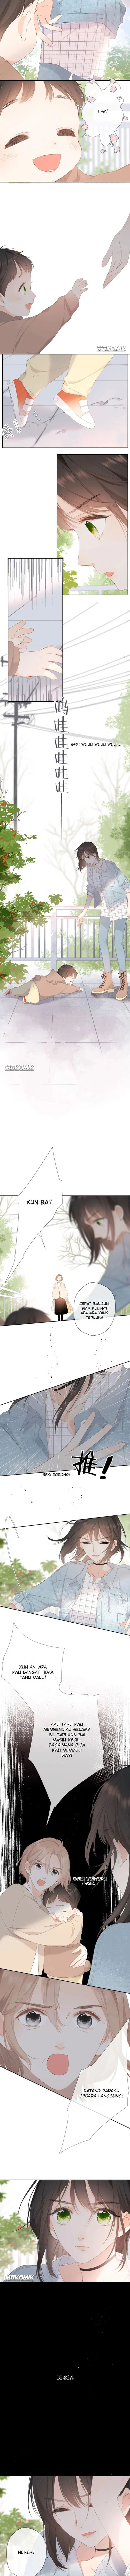 Once More Chapter 16